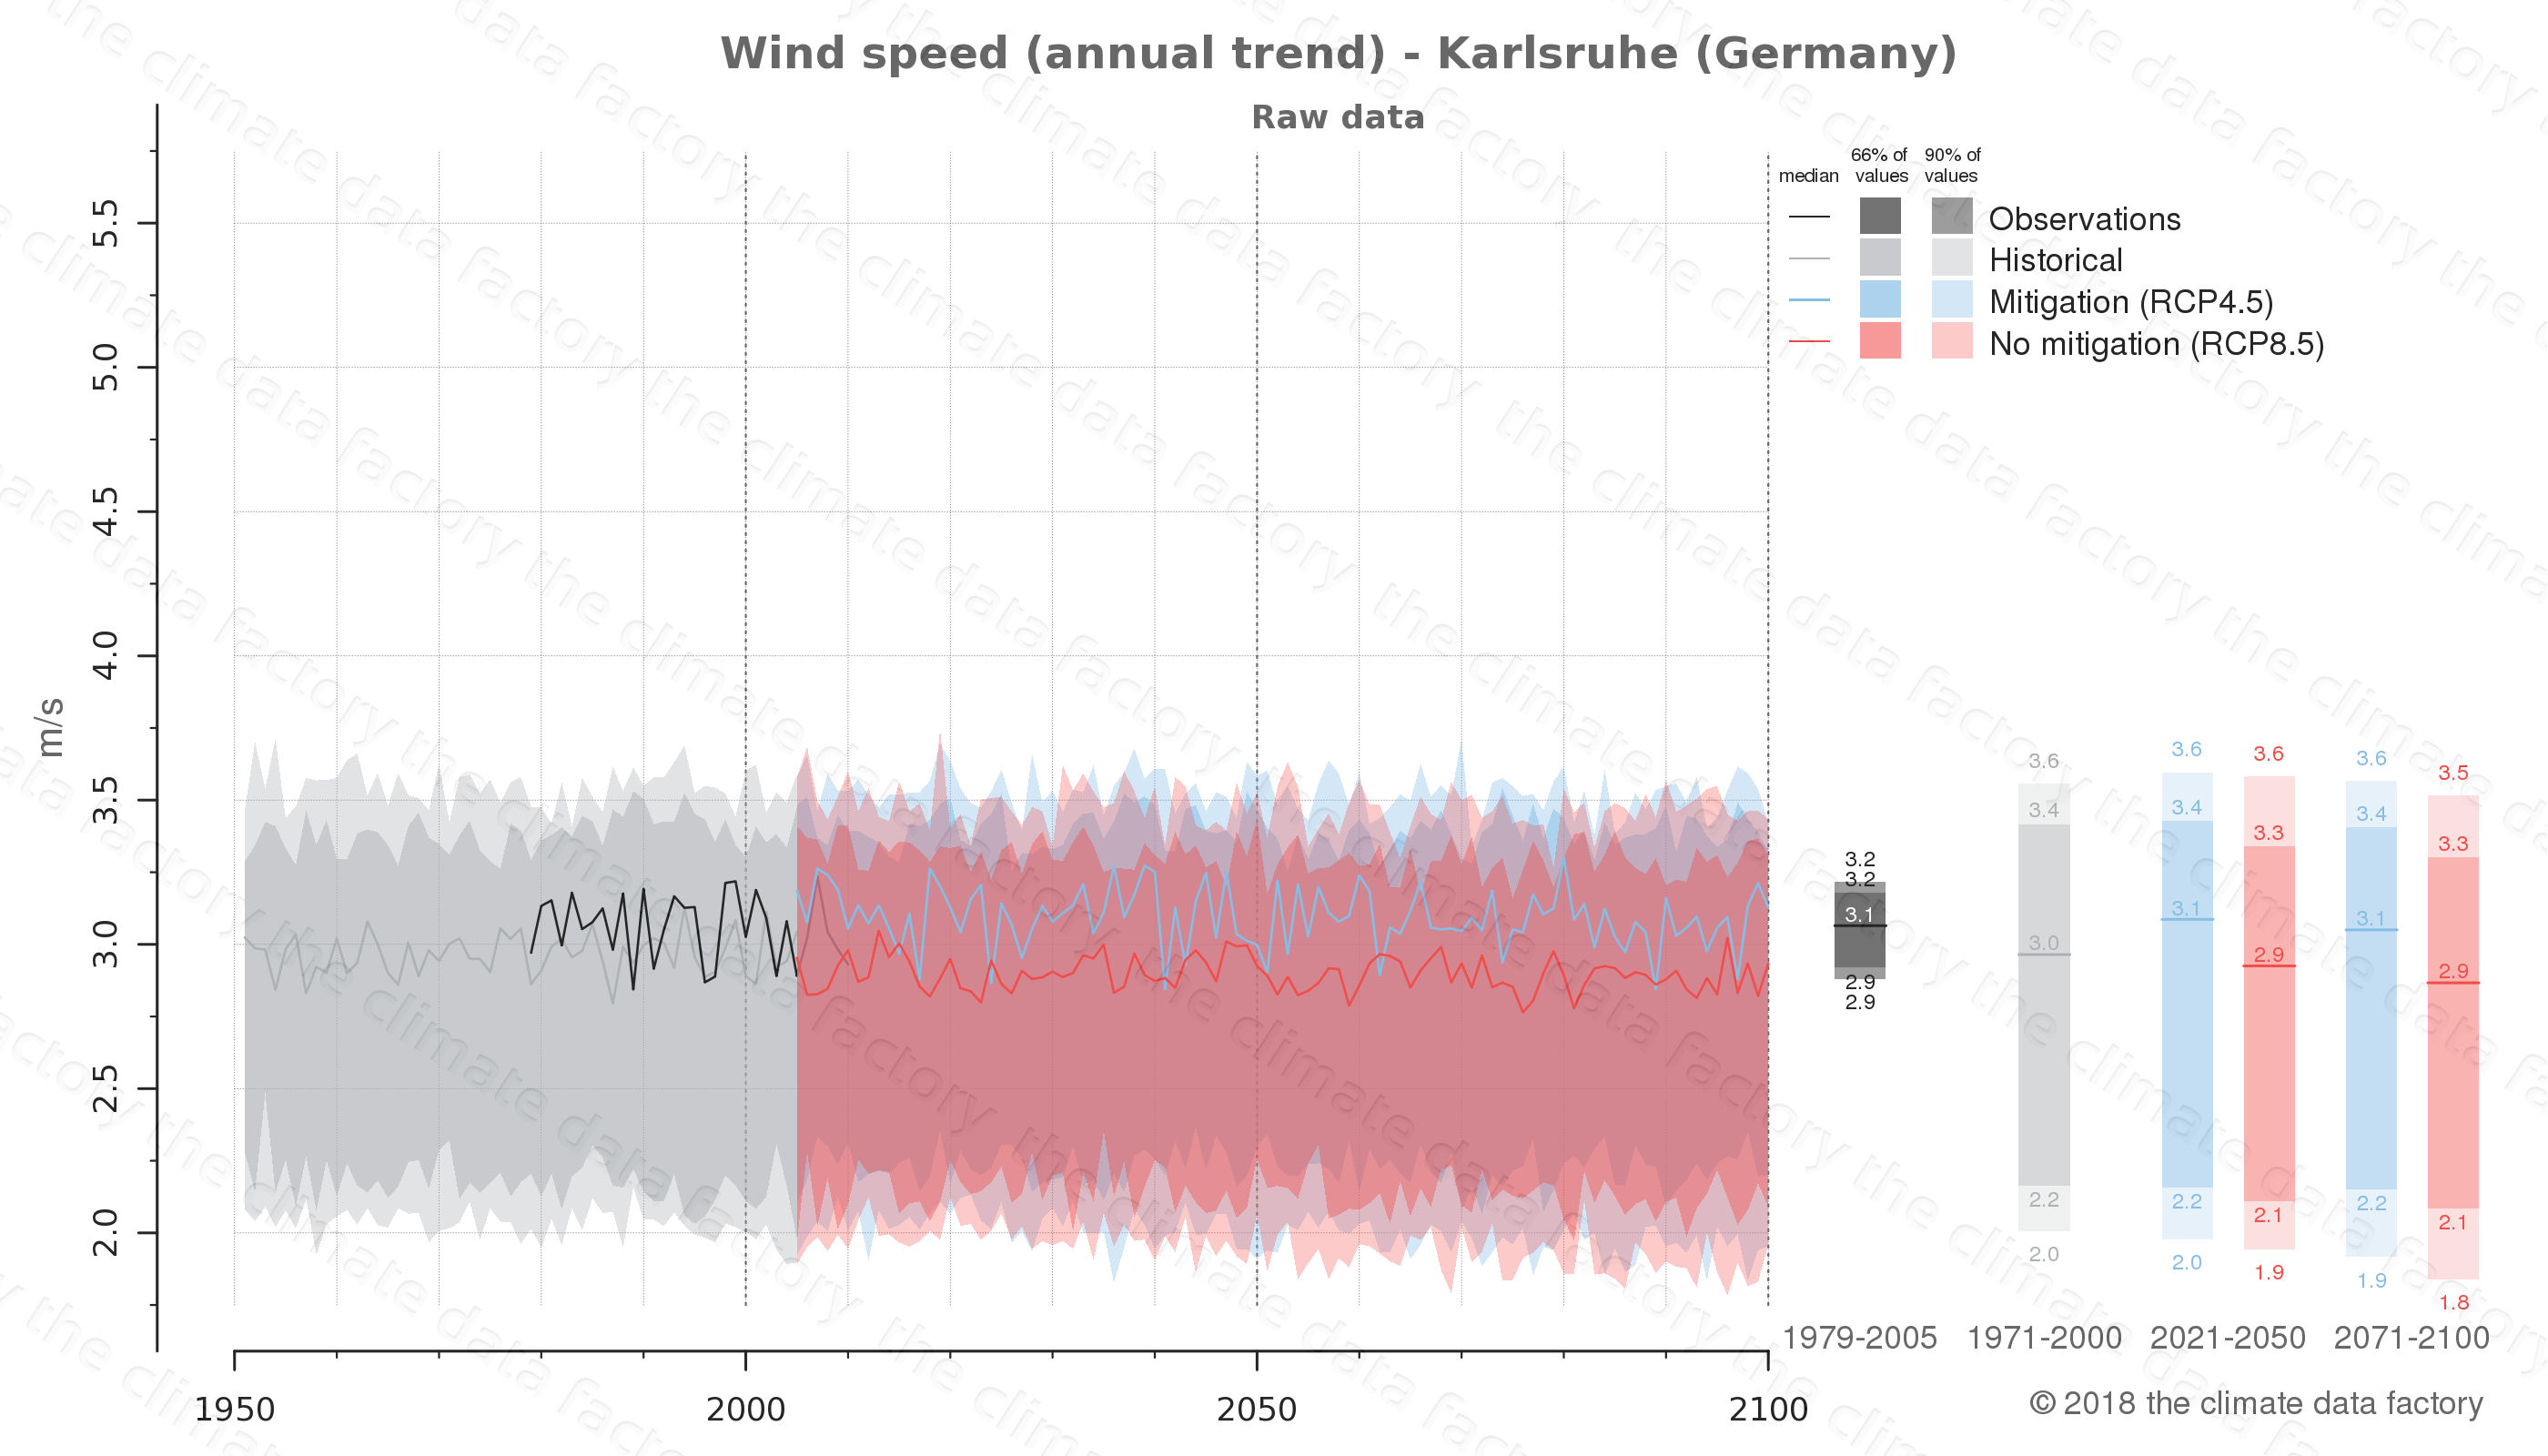 climate change data policy adaptation climate graph city data wind-speed karlsruhe germany